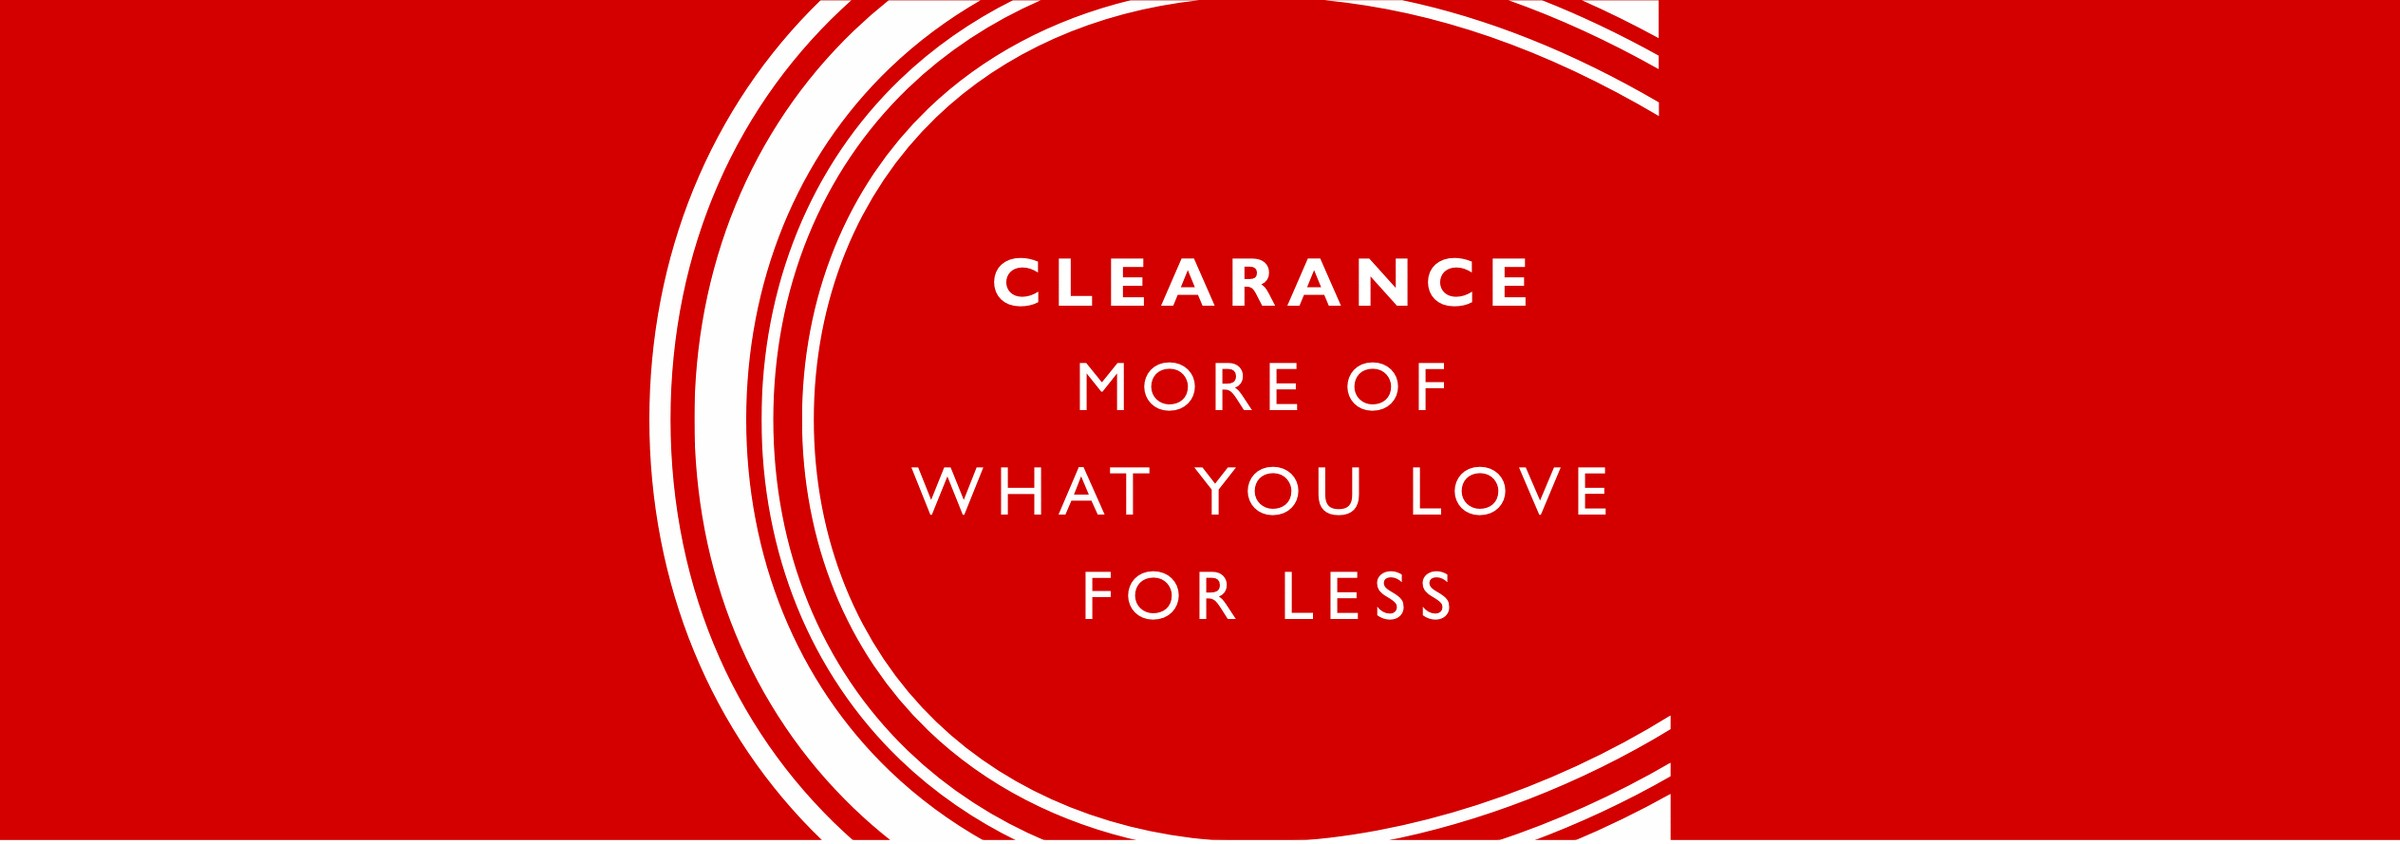 25c6ebc7c5907 Clearance & Offers | Find Clearance Bargains | John Lewis & Partners